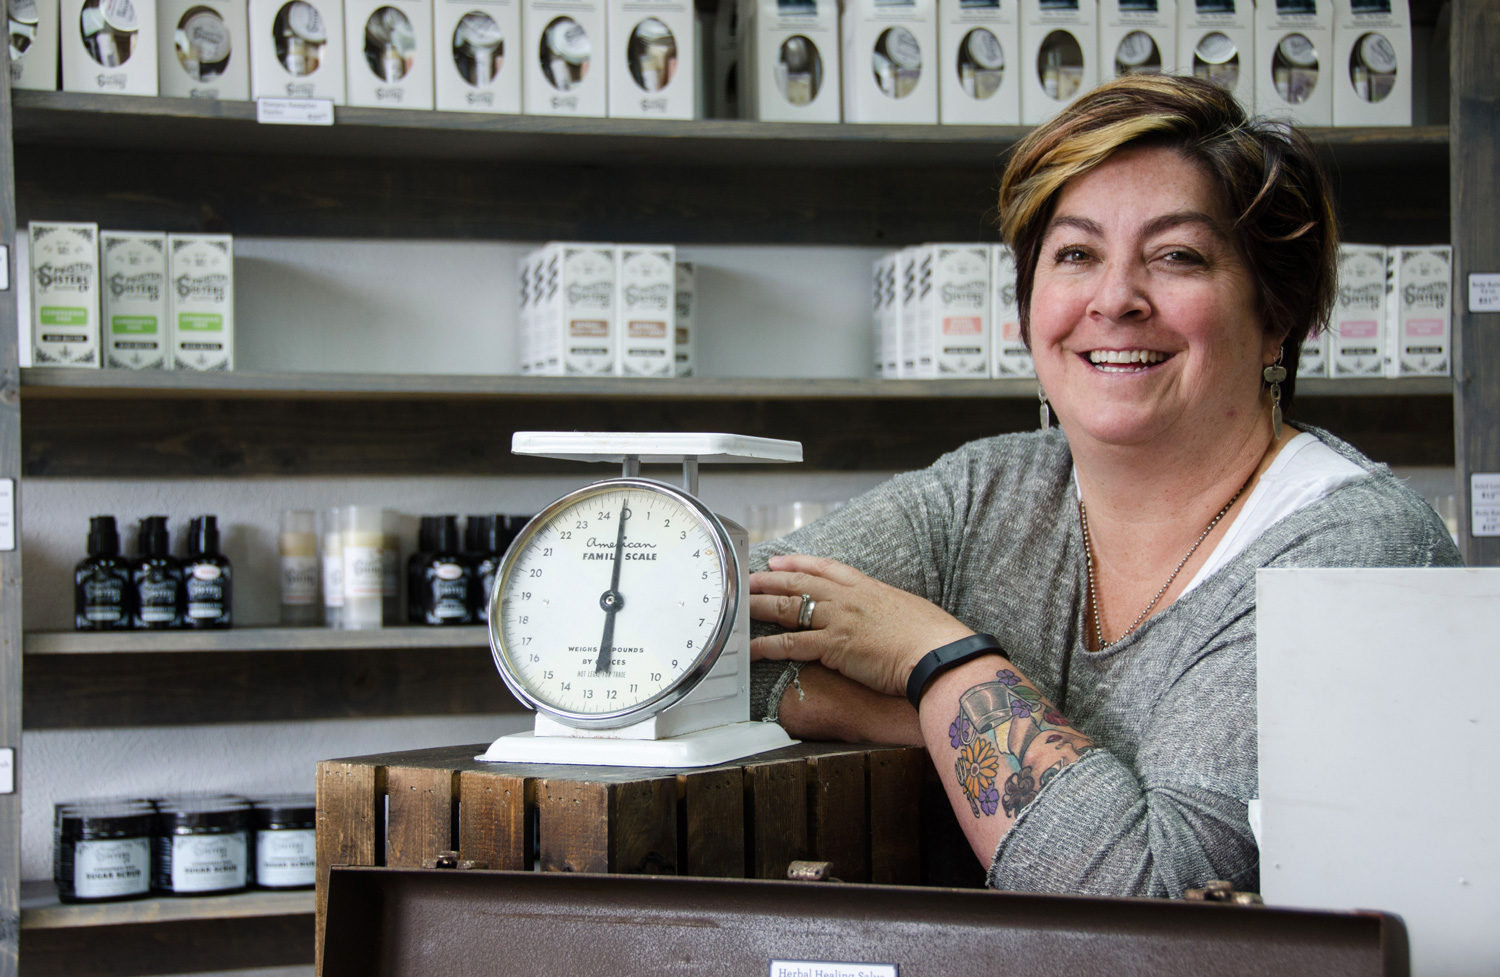 Kelly in the Spinster Sisters store in Golden, Colorado (via Small Things in Big Numbers)